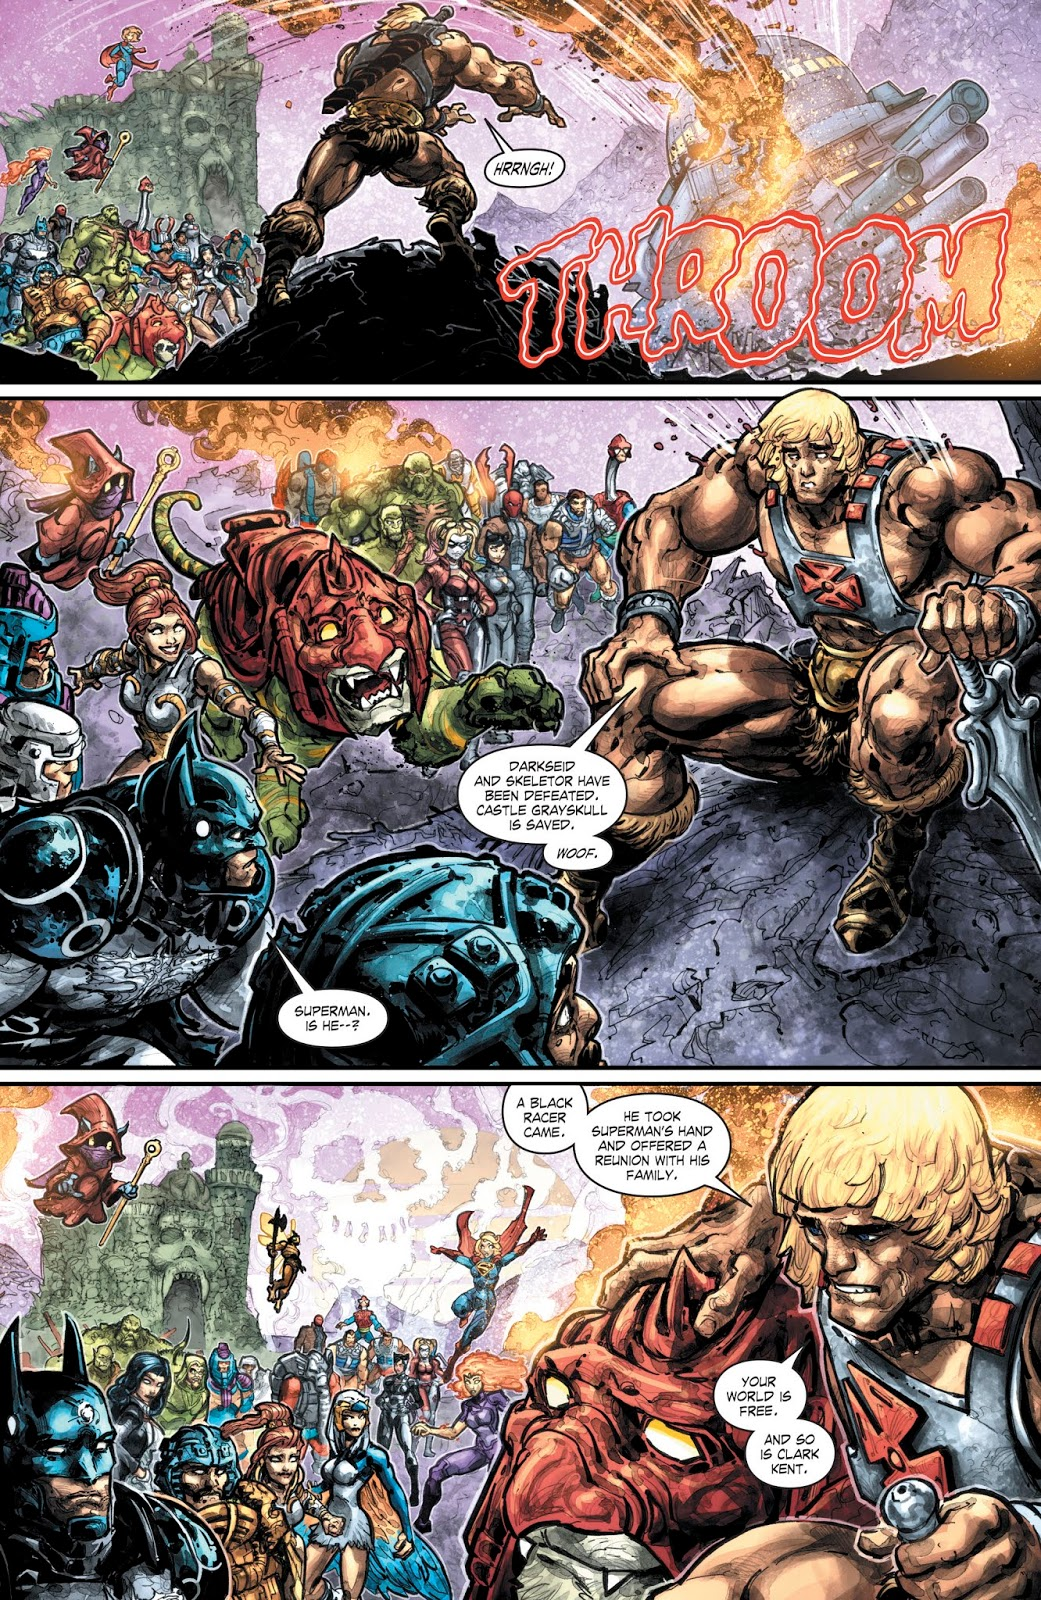 Dc Comics Universe Mattel Injustice Vs Masters Of The Universe 6 Spoilers How Does This Epic End What Are The Fates Of Superman He Man Inside Pulse